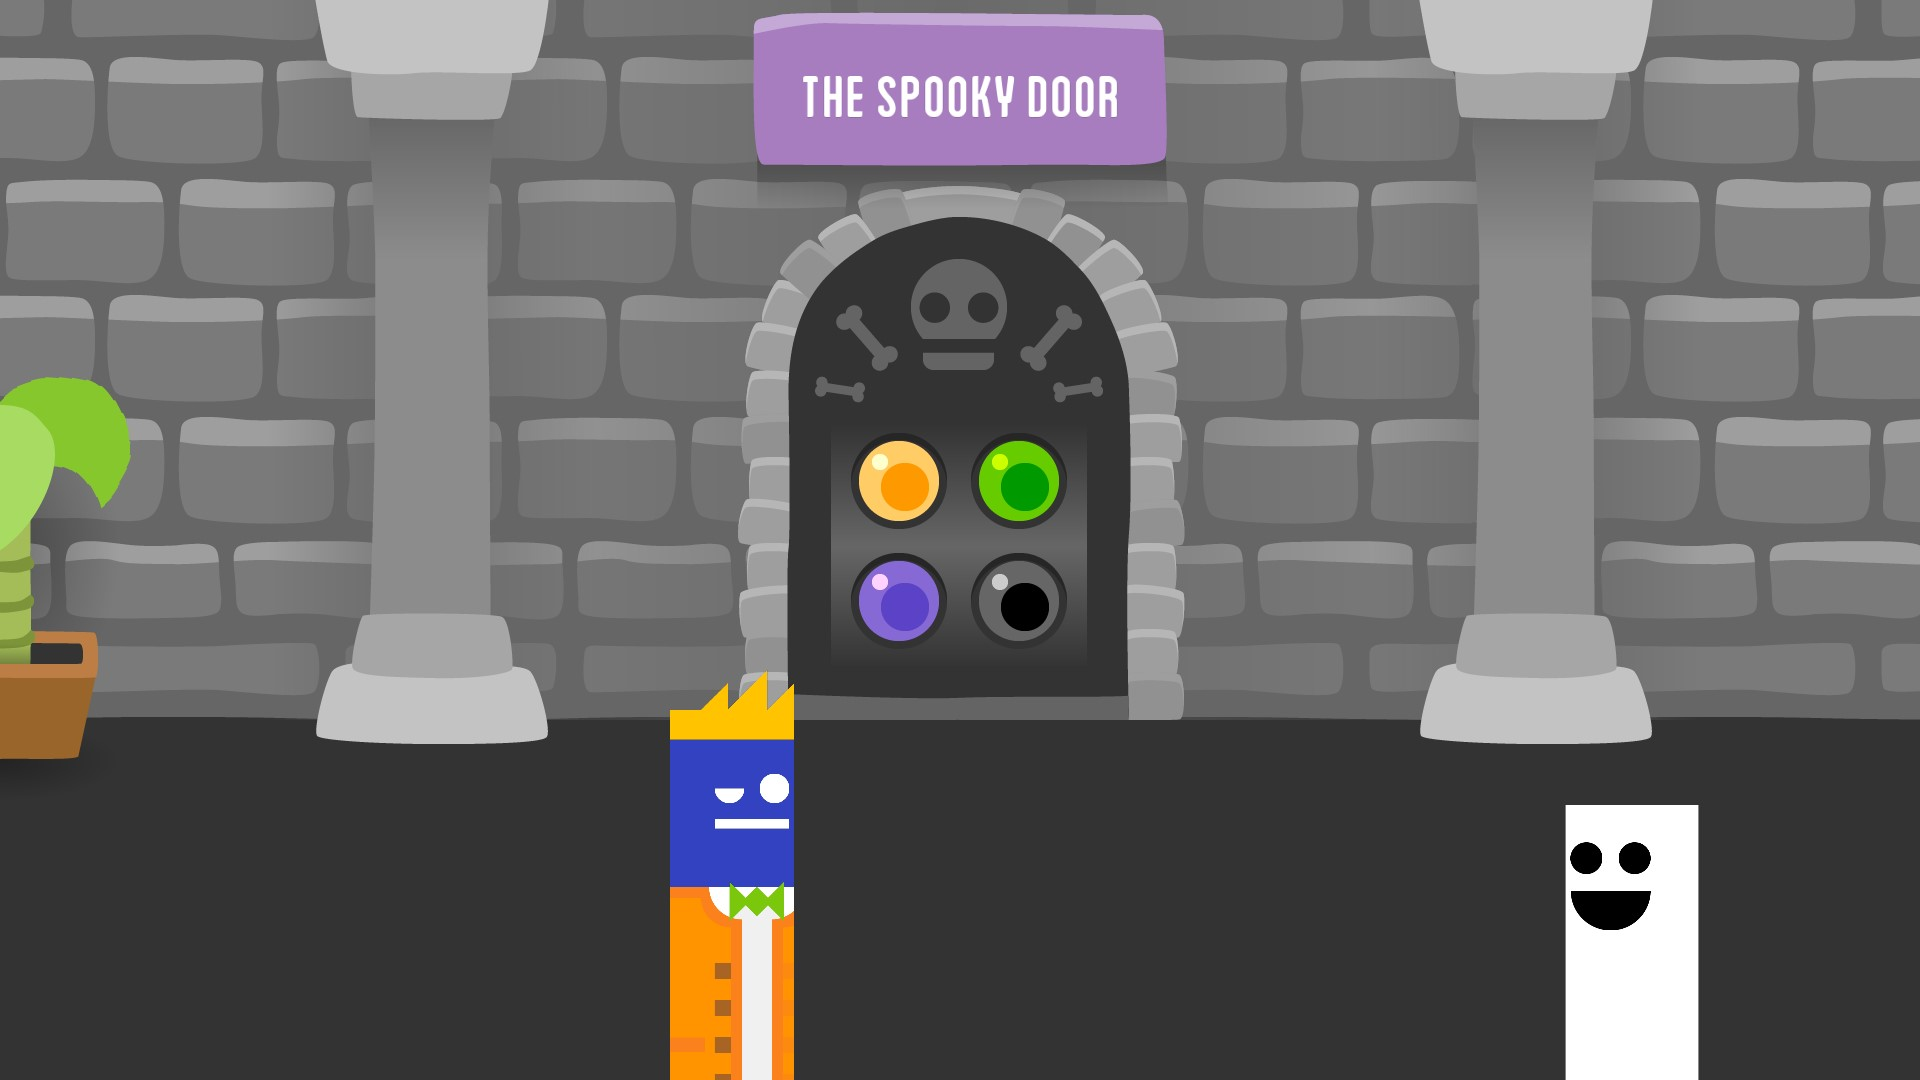 The Spooky Door